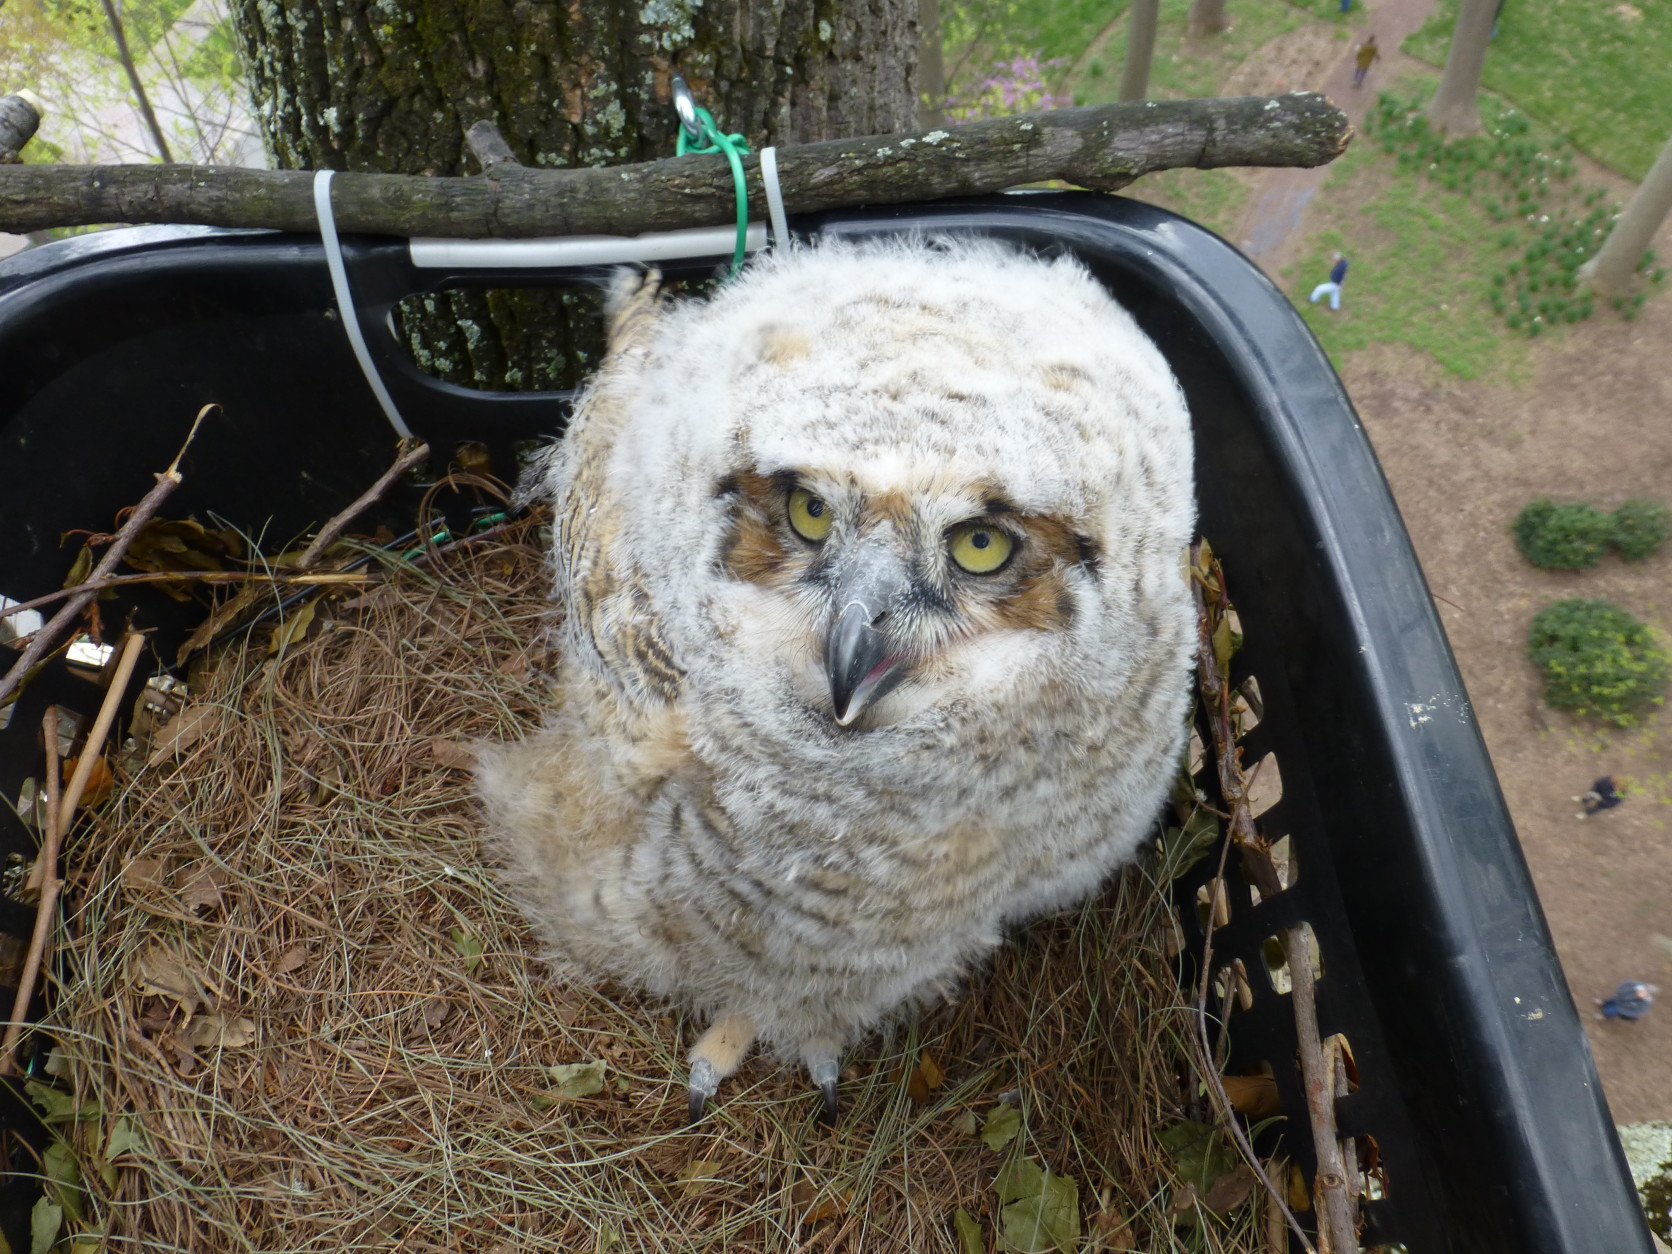 GREAT-HORNED-OWL-BABY-1672x1254 Boarding House Design Philippines on room design philippines, best house designs in the philippines, house designs pampanga philippines, bungalow design philippines, apartment design philippines, prefabricated home design philippines, building design philippines, police station design philippines, bed design philippines, condominium design philippines, simple modern house philippines, warehouse design philippines, dormitory design philippines, office design philippines, small houses in the philippines, architectural designs in the philippines, garage design philippines, house floor plan philippines, bar design philippines, townhouse design philippines,